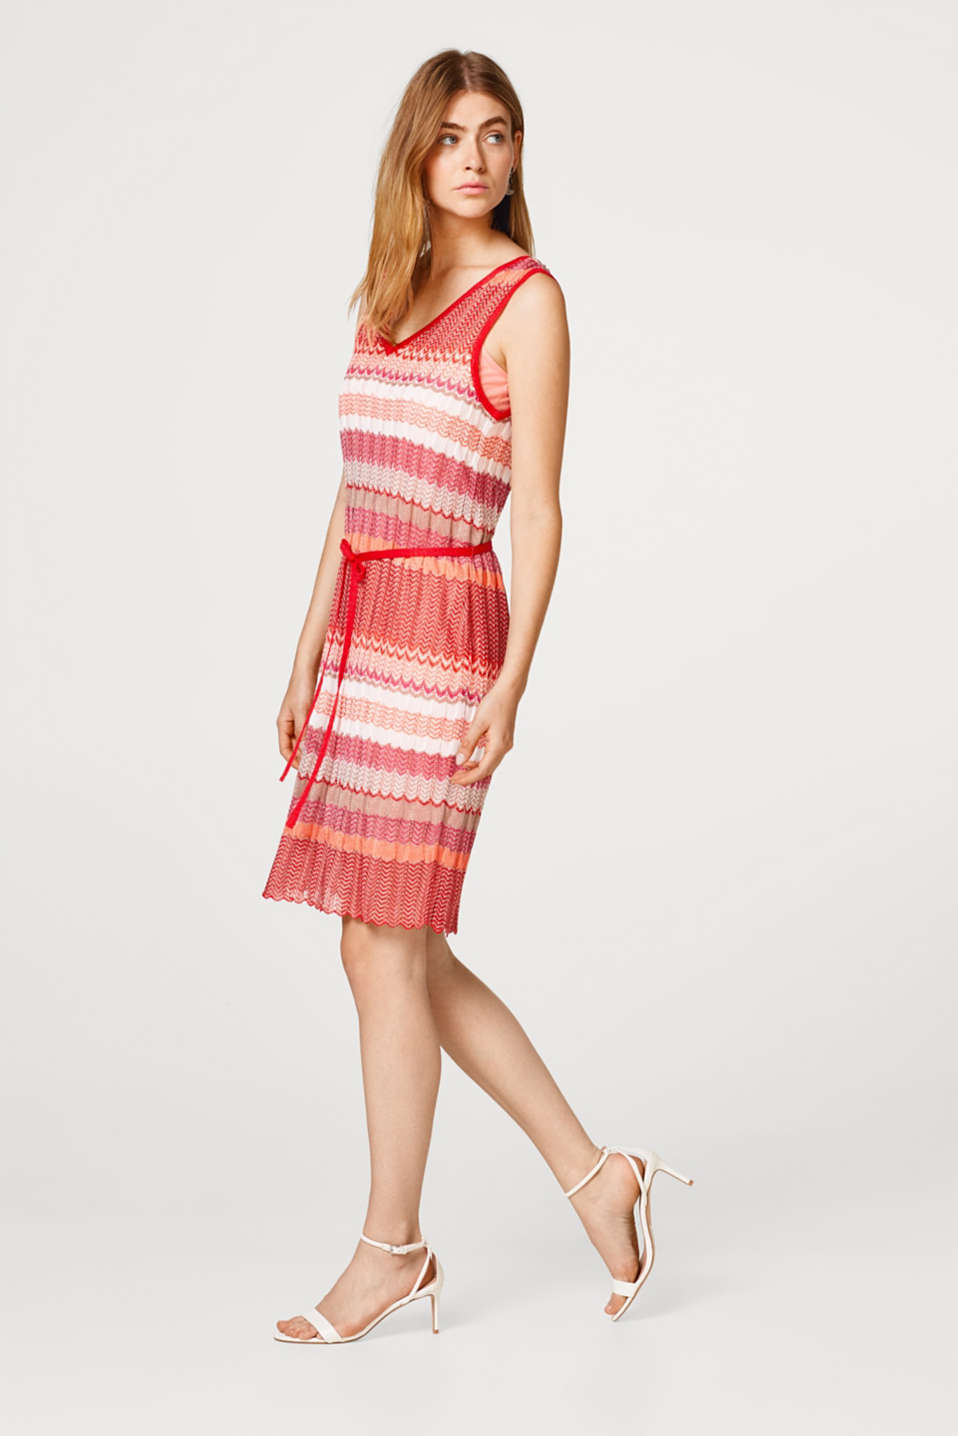 Dress composed of openwork knit fabric with a zigzag pattern